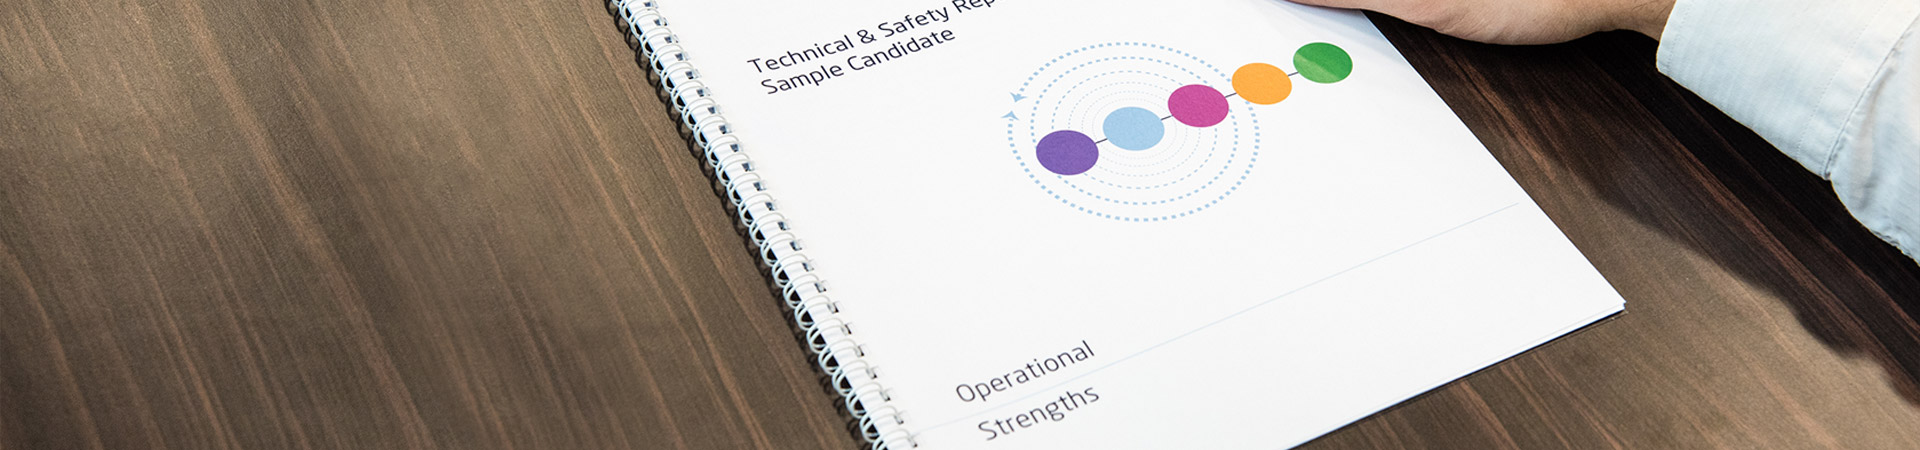 operational strengths questionnaire psychometric test